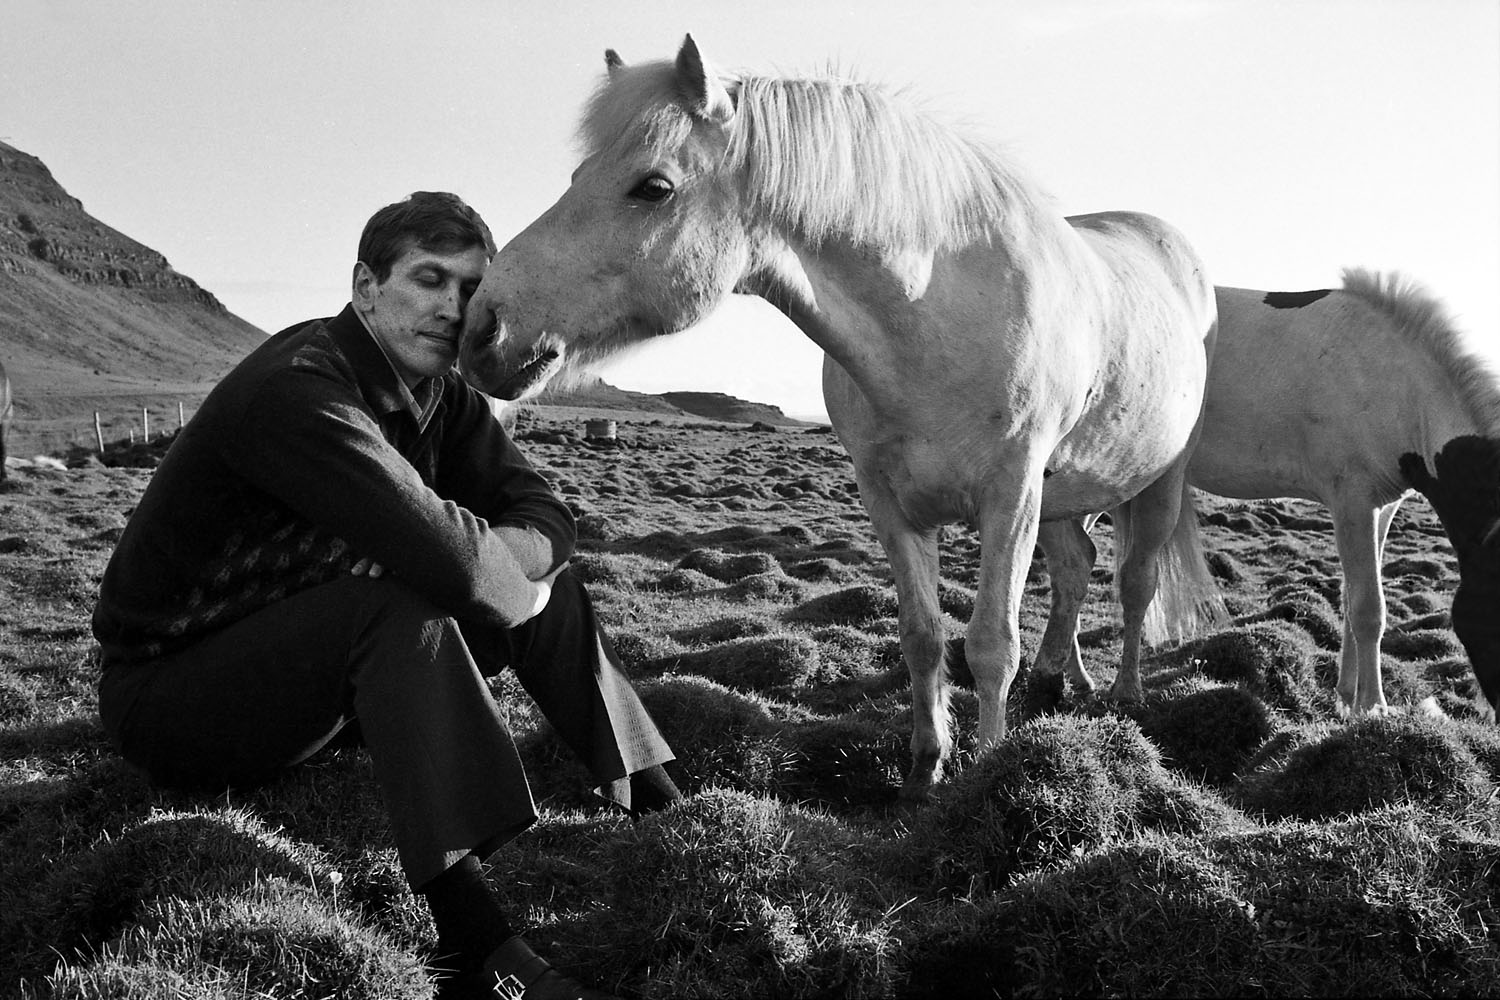 Nuzzling a horse in a lava field, Iceland, 1972